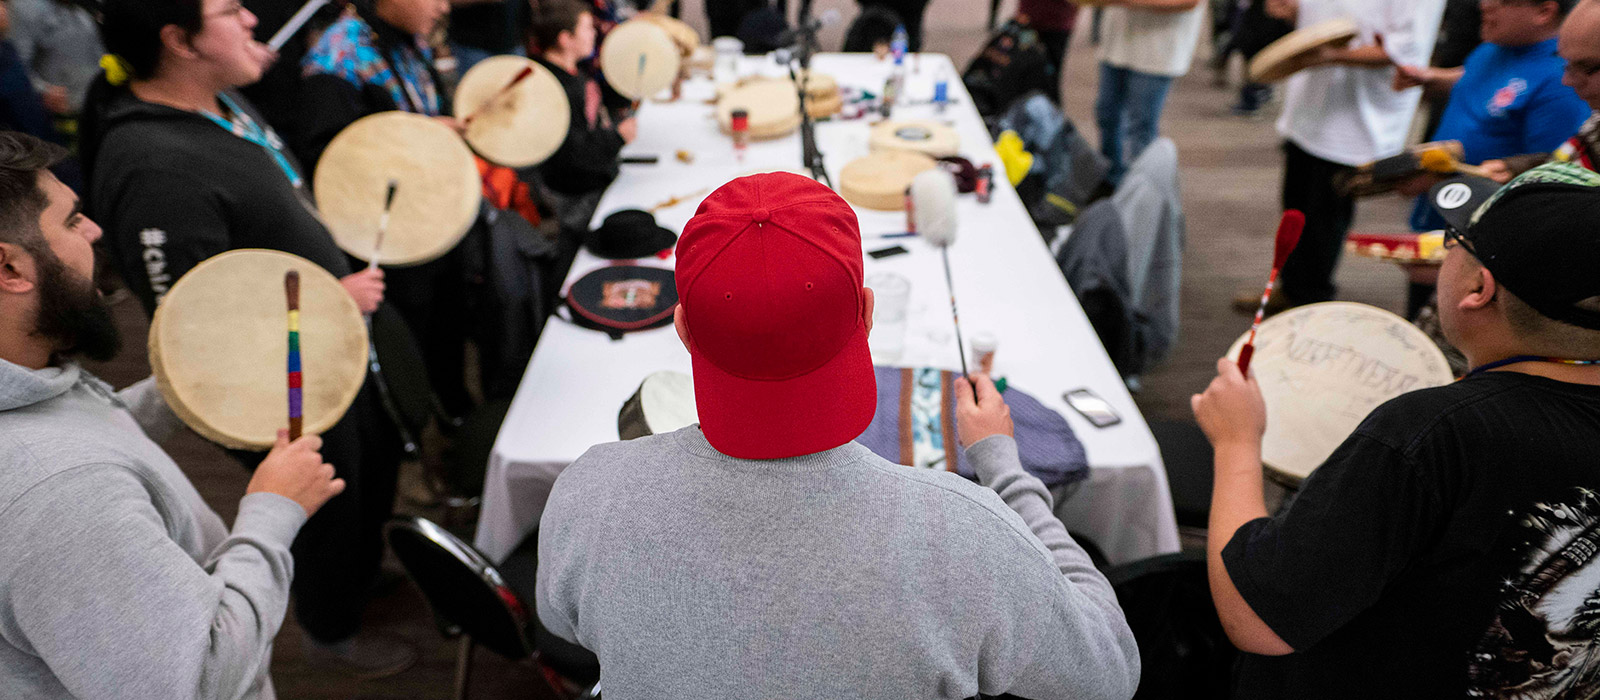 A man wearing a backwards red hat is pictured banging the drums at the Annual Round Dance.